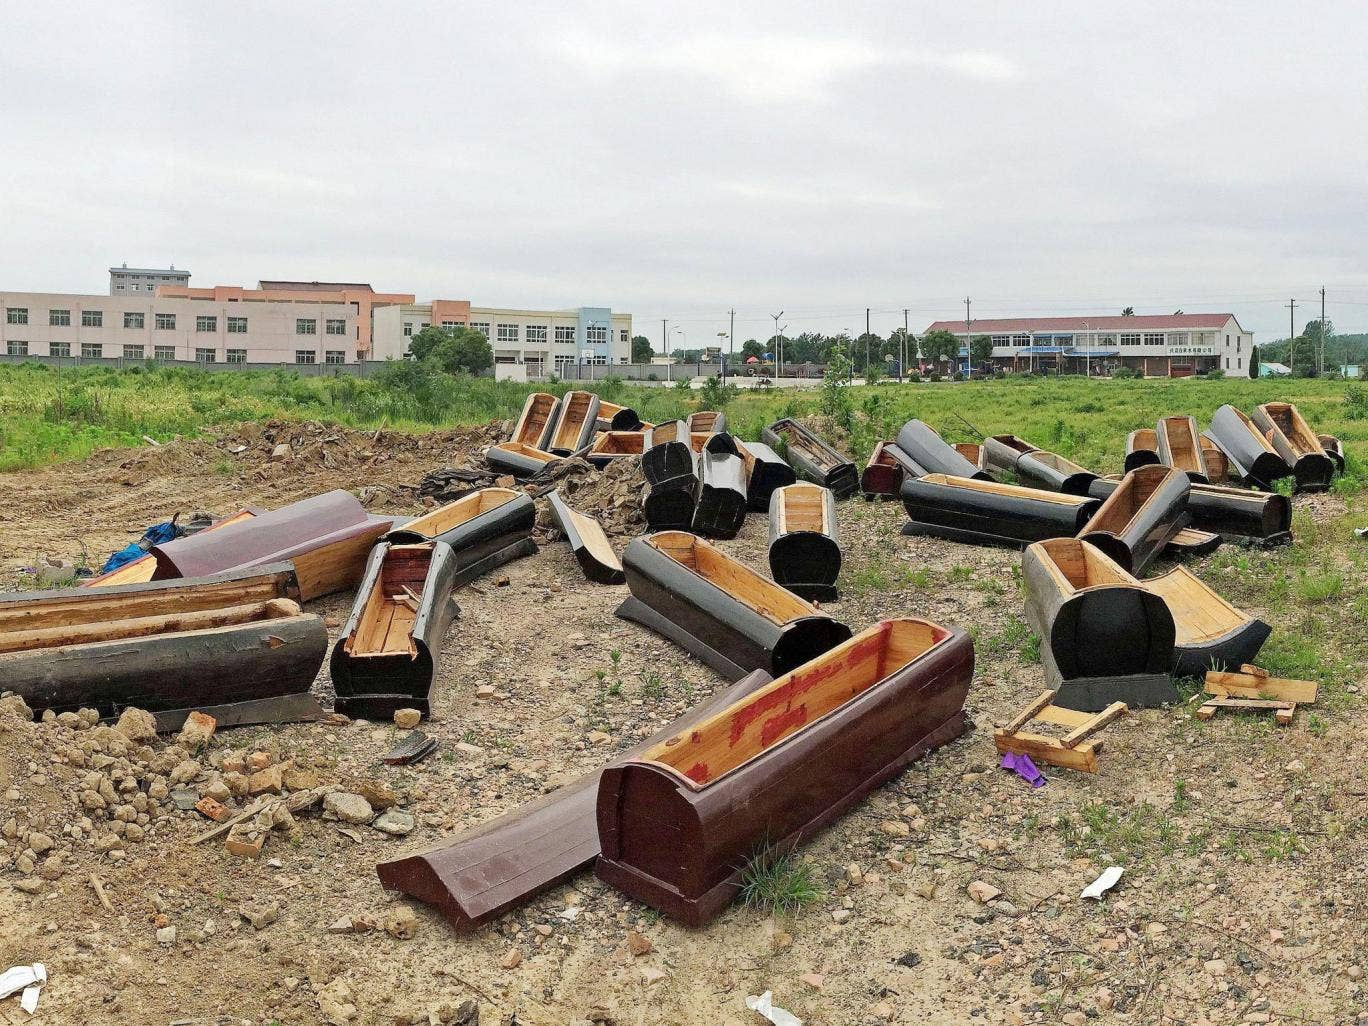 A ban on burials kicked in at the beginning of June in Anhui province